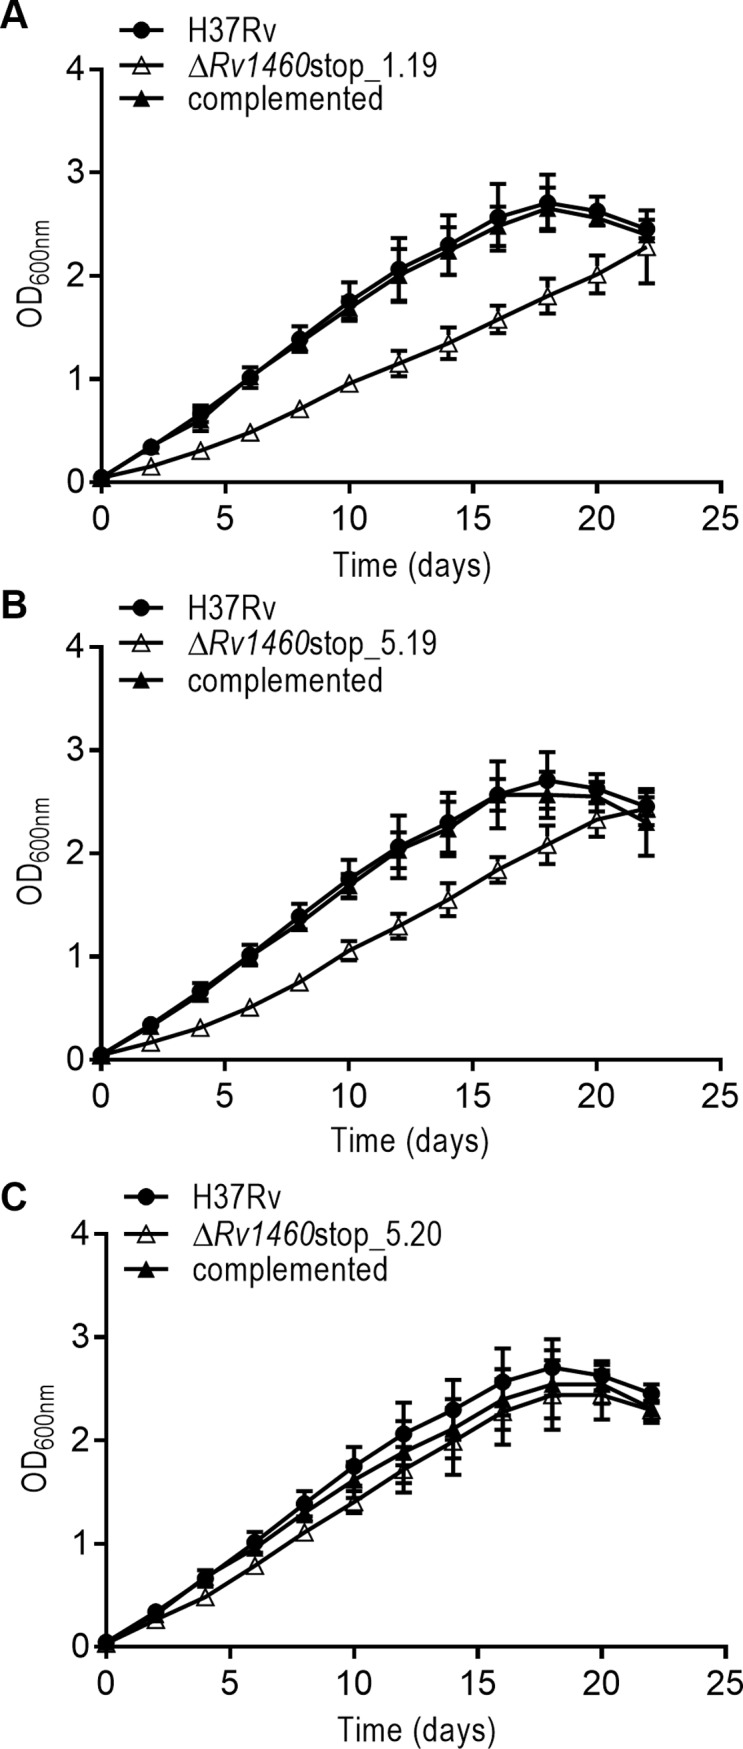 Rv1460 truncation mutants are impaired for growth in vitro under standard culture conditions. (A–C) Growth of H37Rv (wild-type), three truncation (Δ Rv1460 stop) mutants and their complemented strains under standard conditions in 7H9 OADC. The results shown are the mean and standard deviation of three experiments.